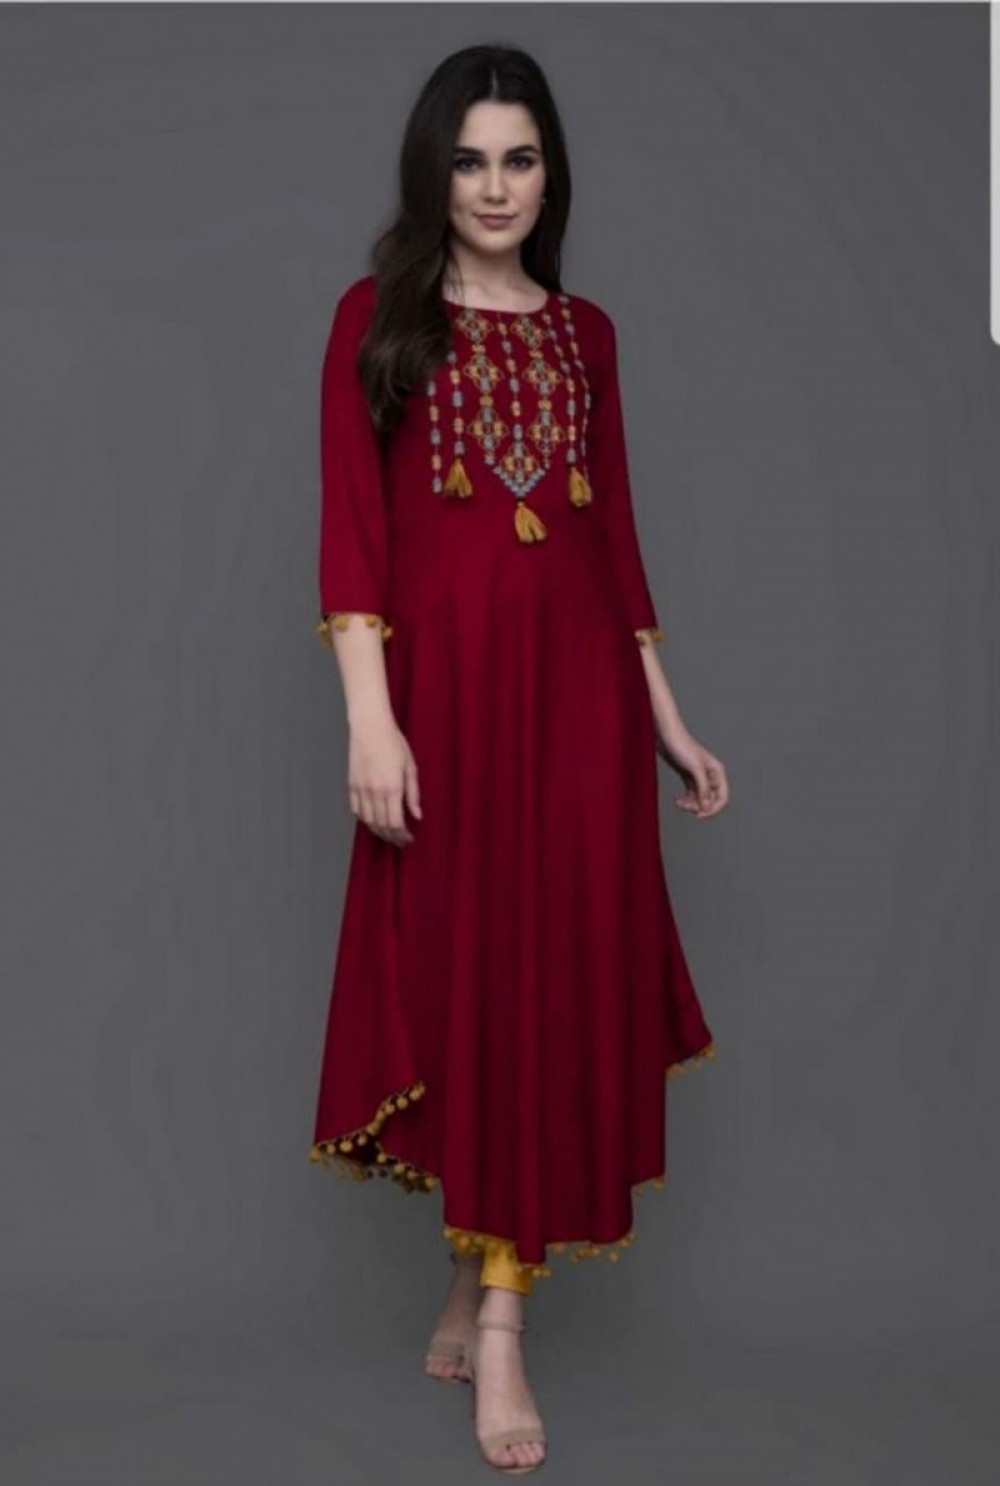 Sophisticated Festival Rayon Stitched Red Colour Kurti online available